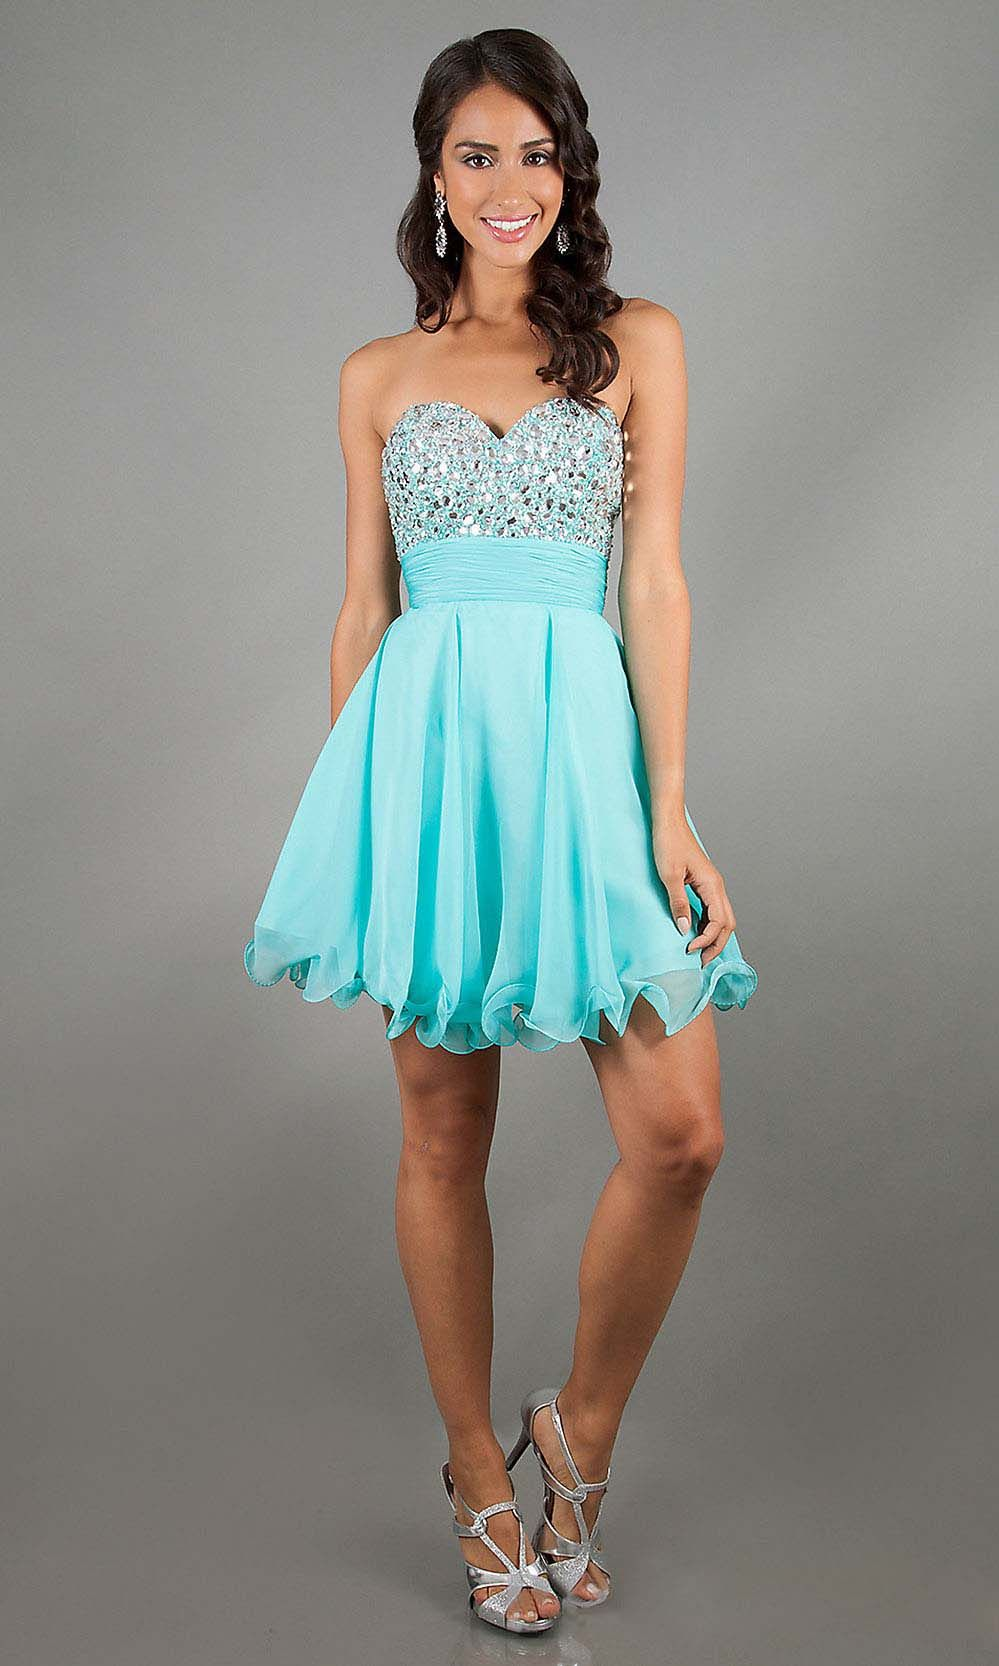 Strapless Beaded Short Prom Dress by Alyce Paris 3558 | Gowns ...